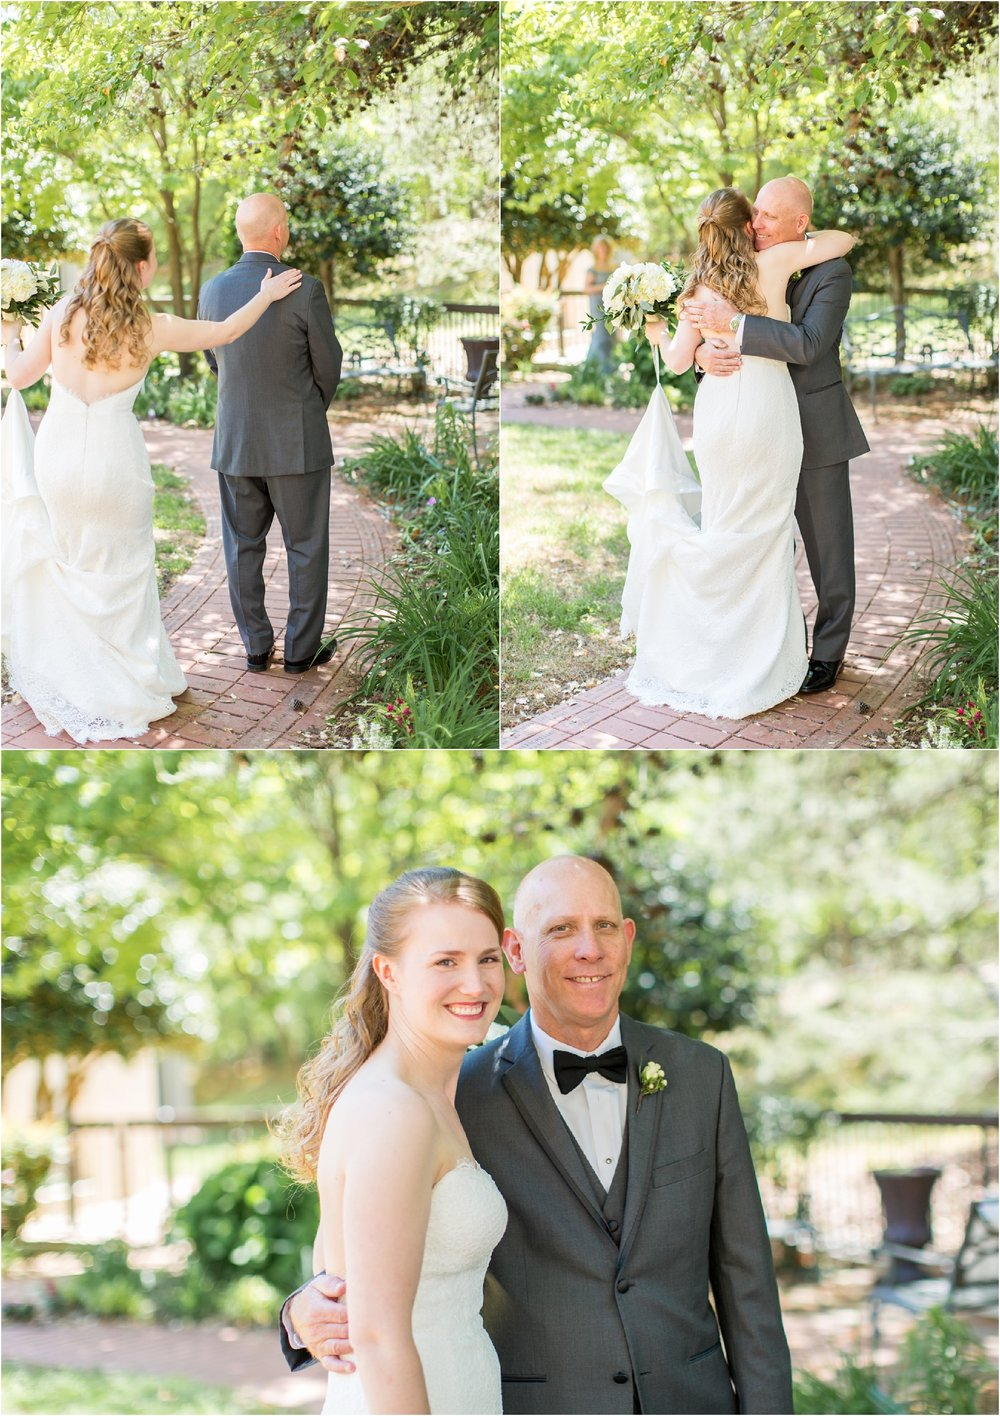 Savannah Eve Photography- Davis Wedding-Blog-4.jpg